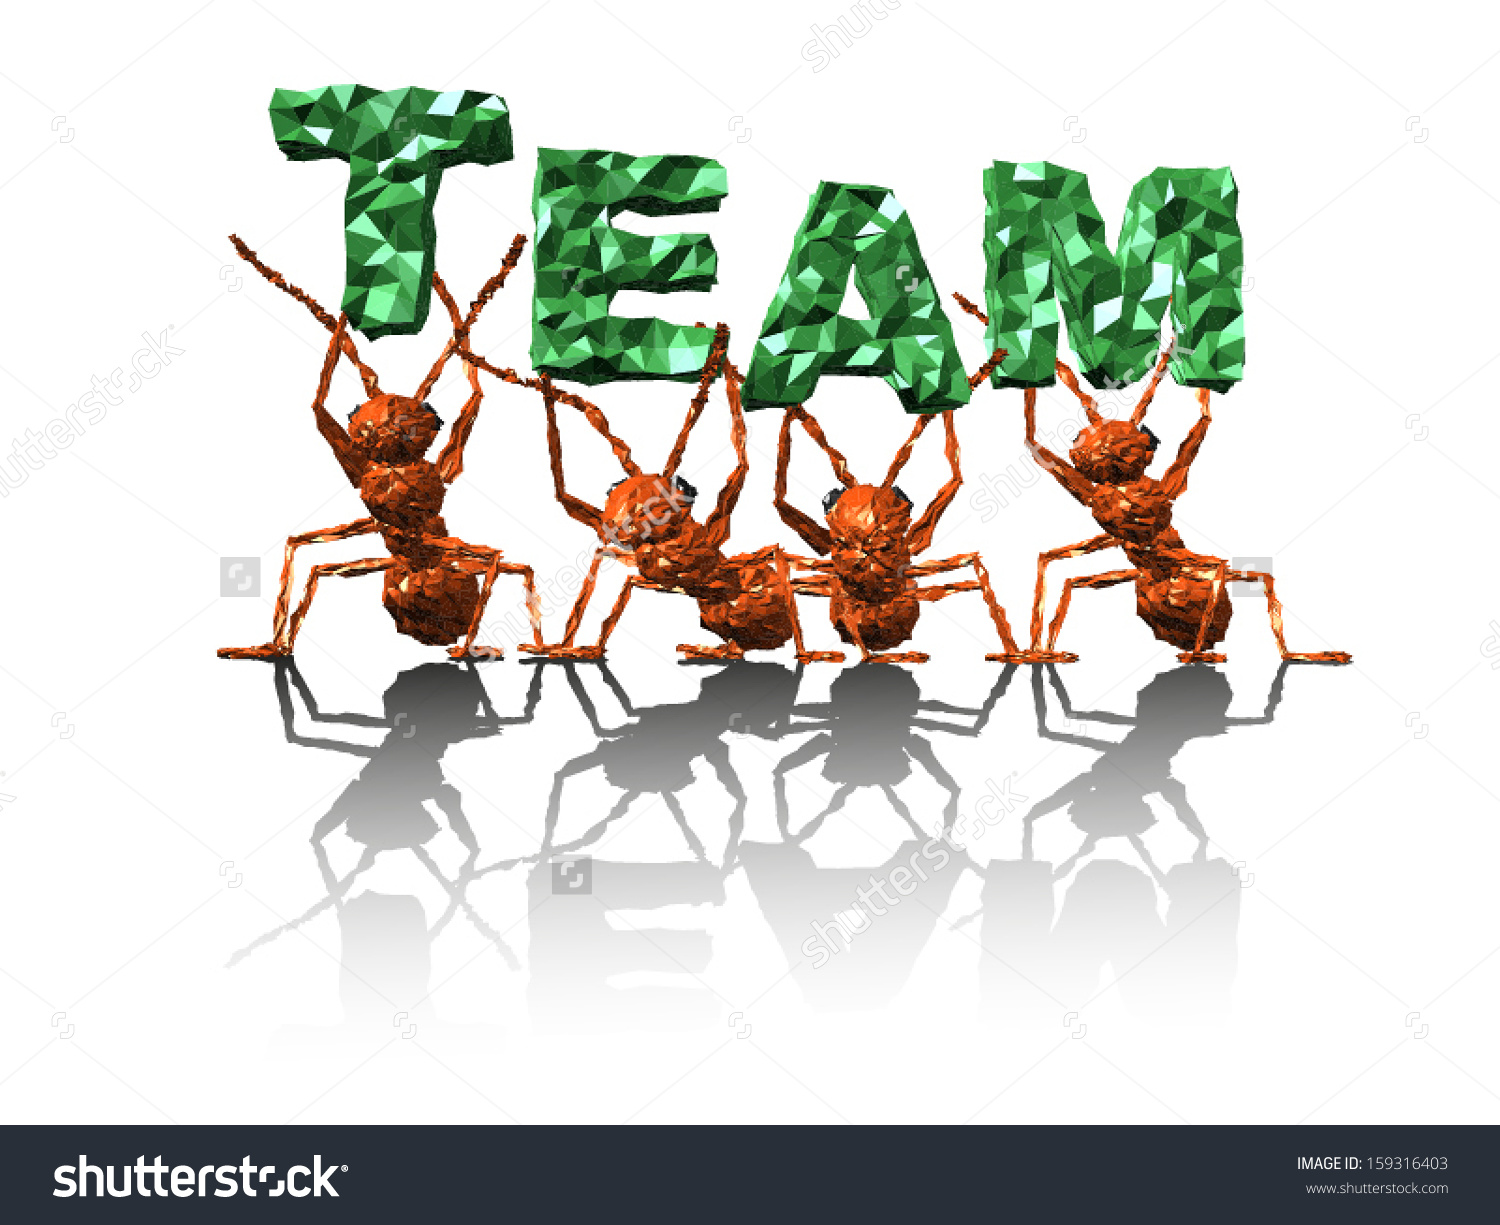 Ants clipart teamwork. Pencil and in color